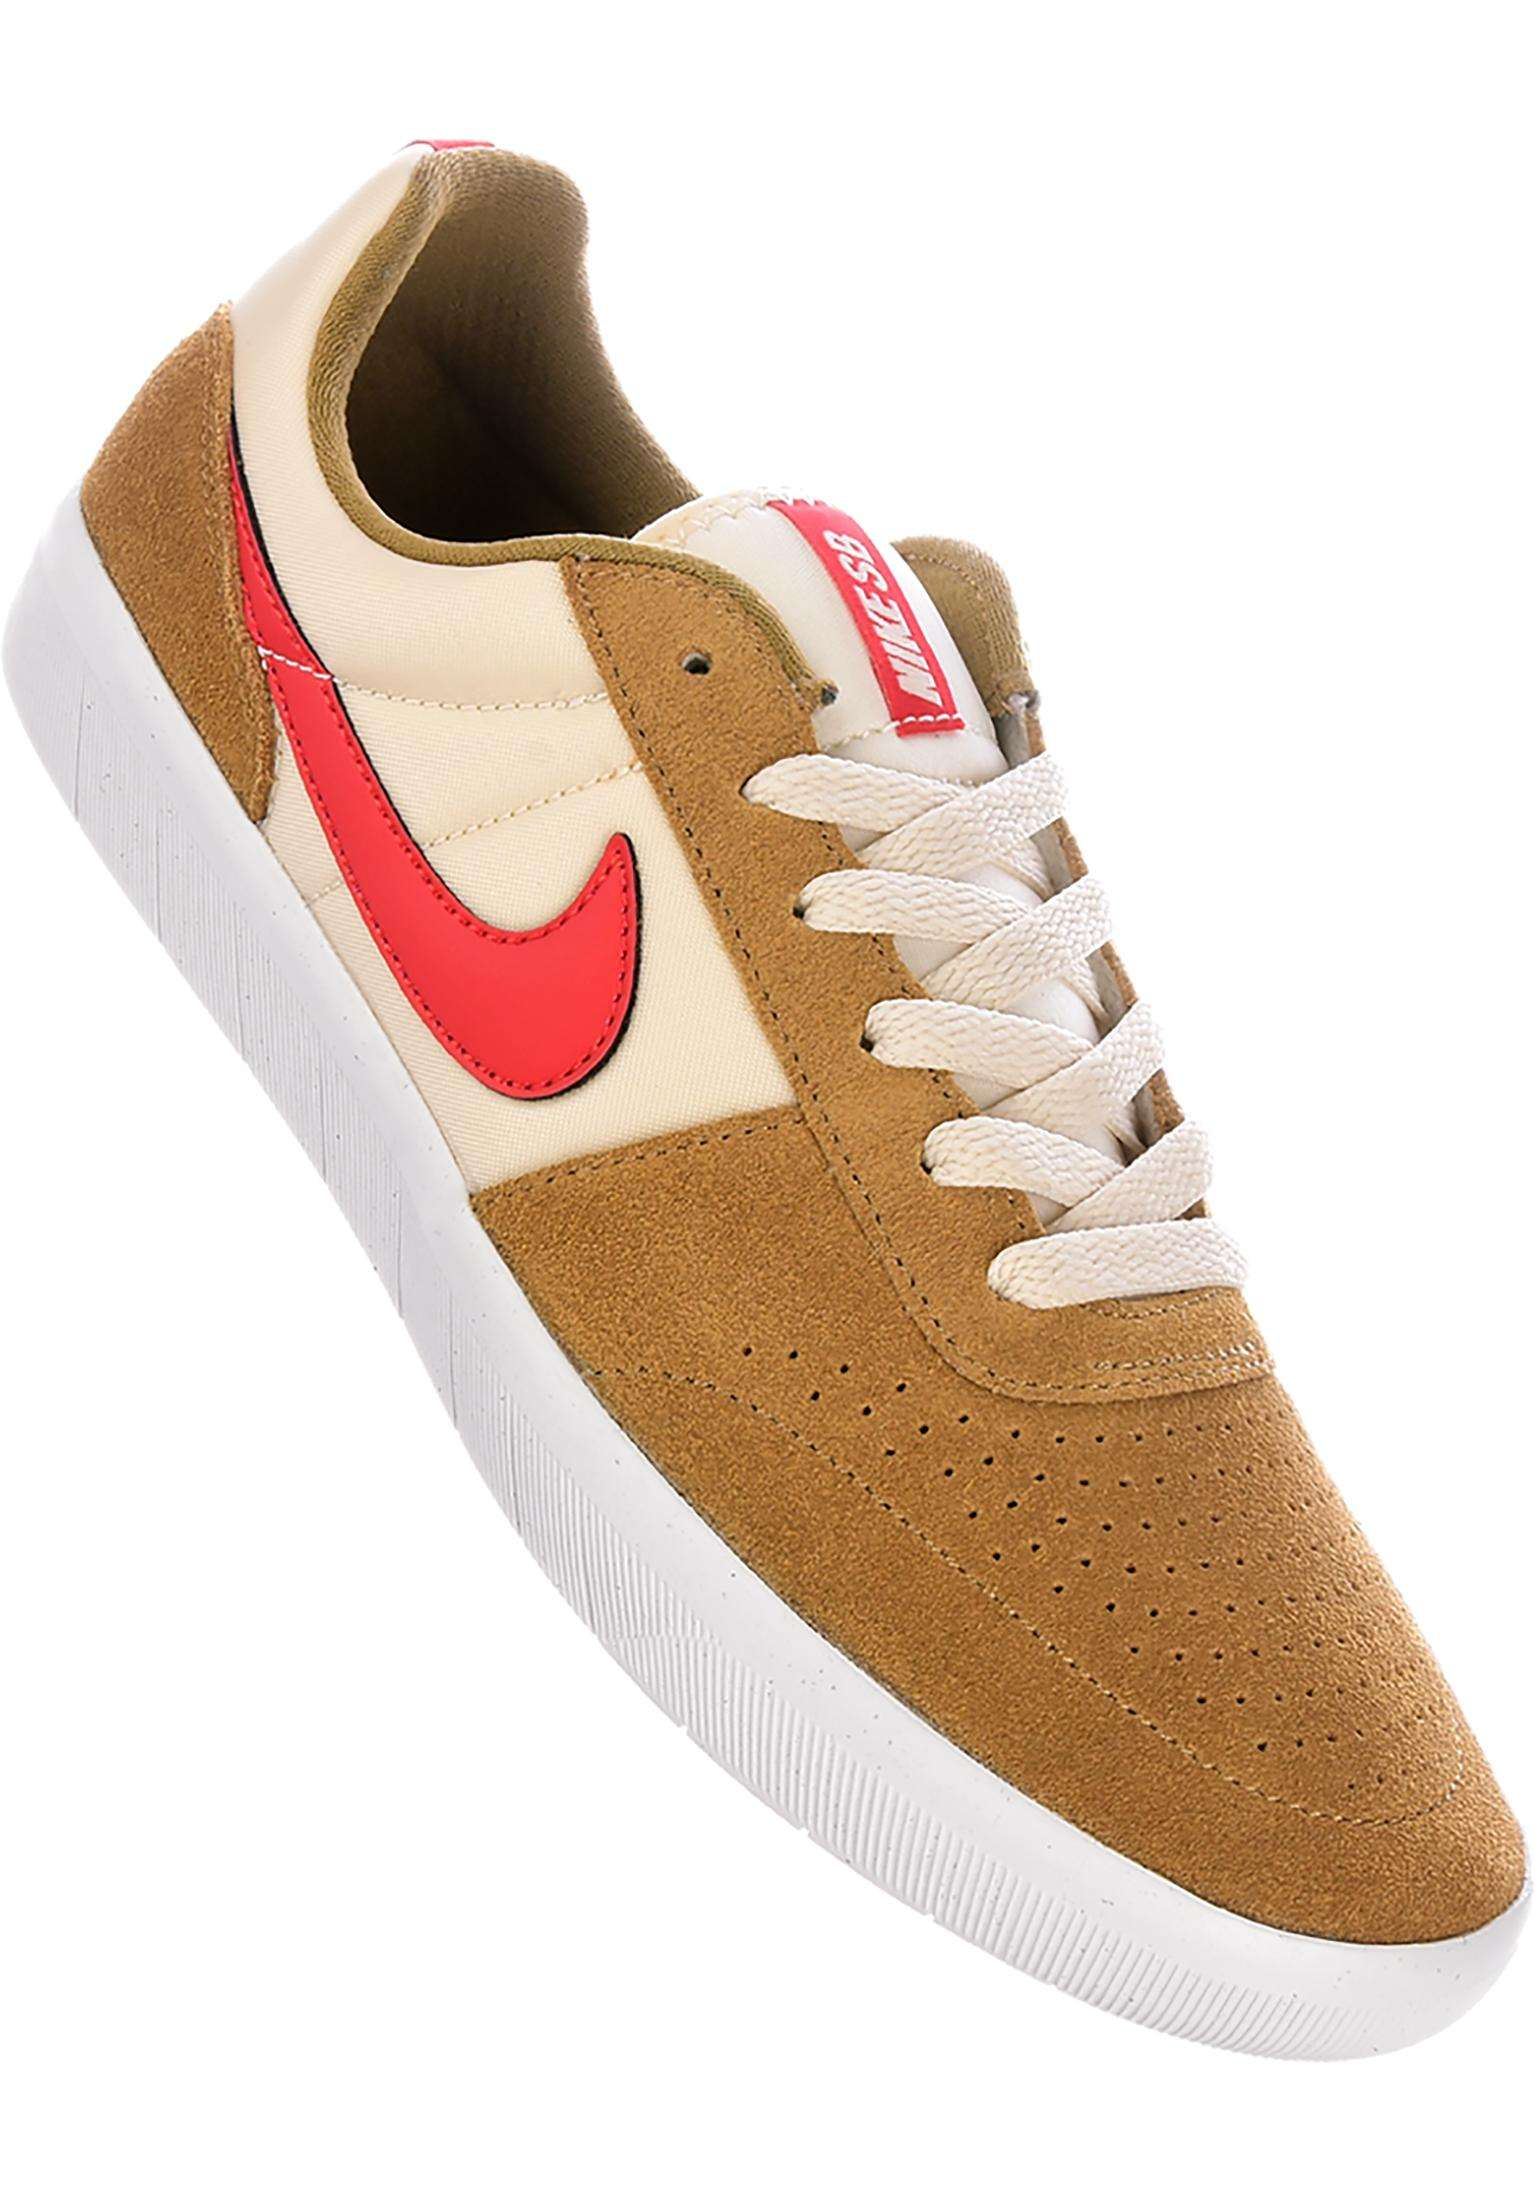 Nike SB Team Classic (Red Blue)